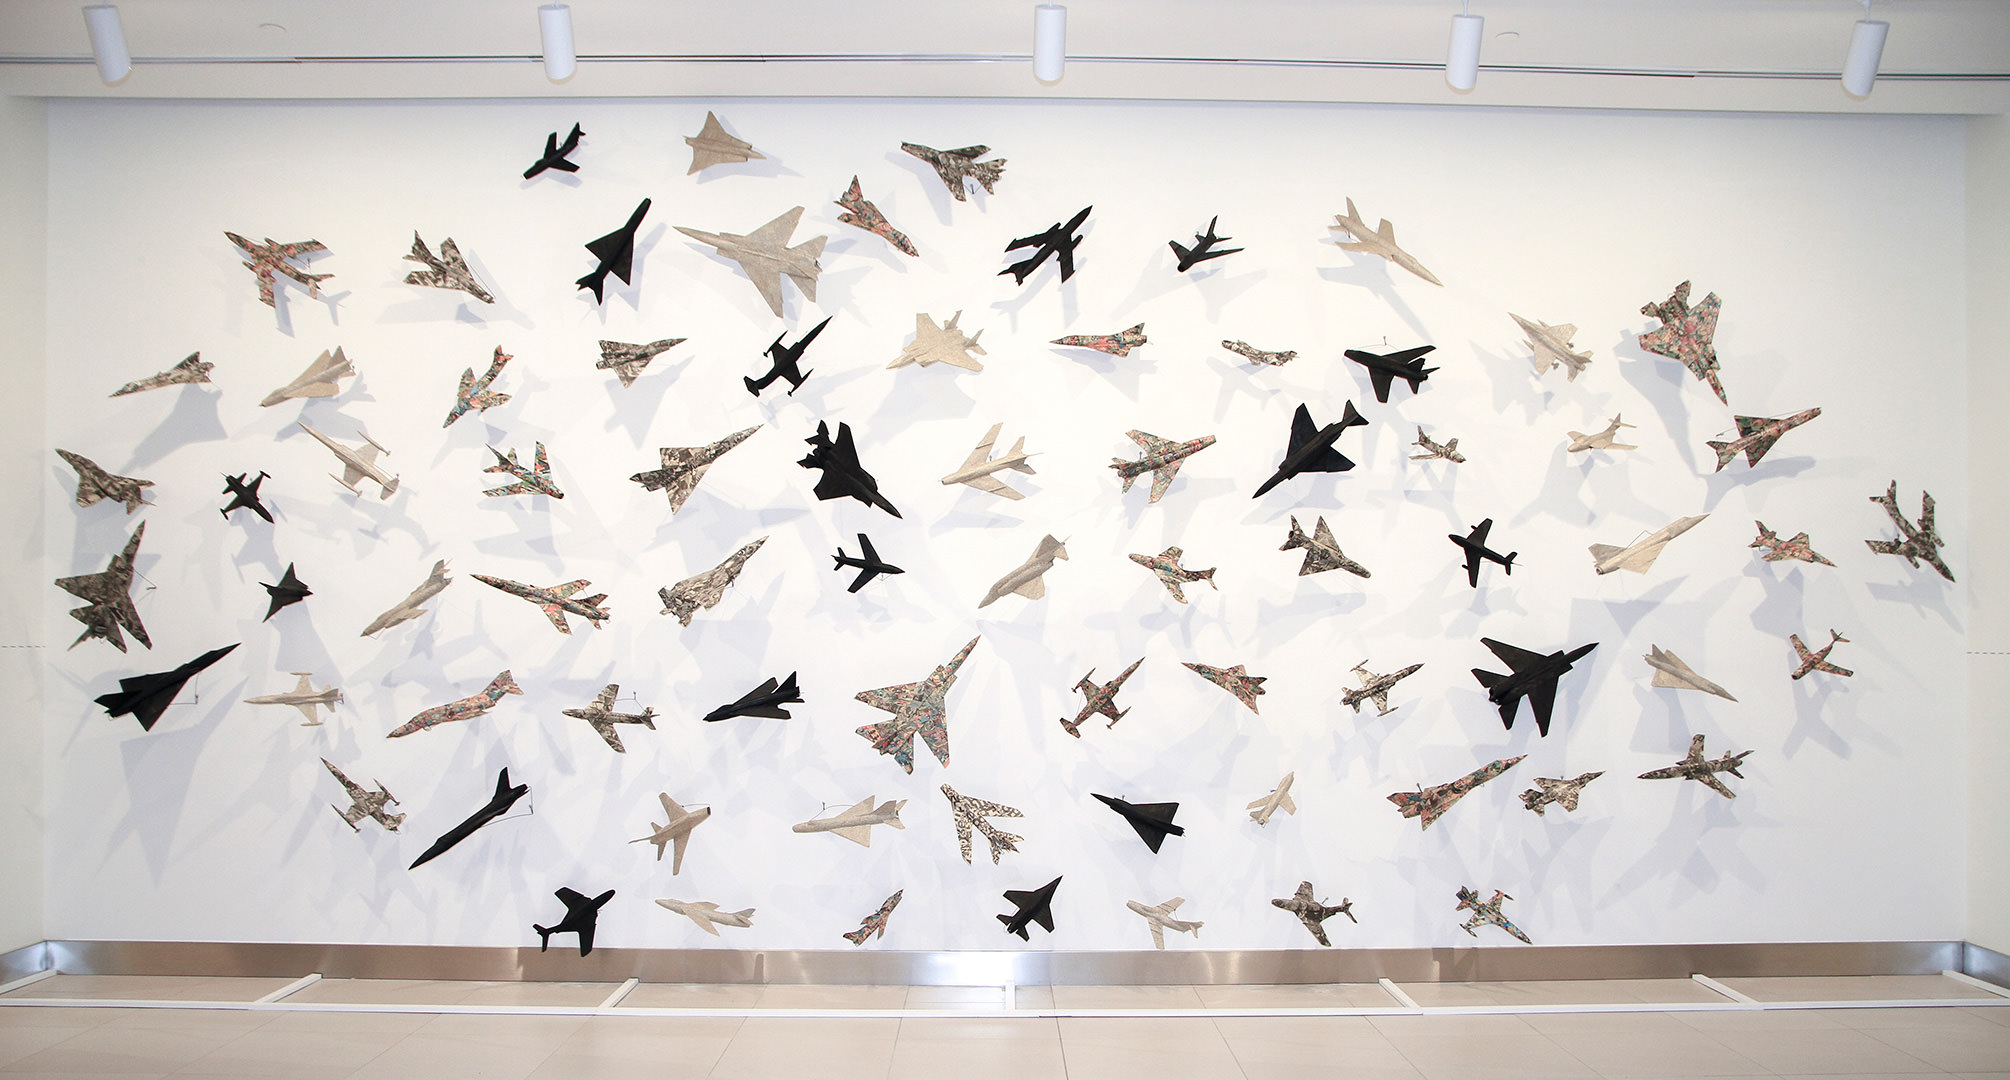 76 Airplanes (1985) Robert Adrian (1935 - 2015) Installation: collage on model airplanes Collection: Canada Council Art Bank